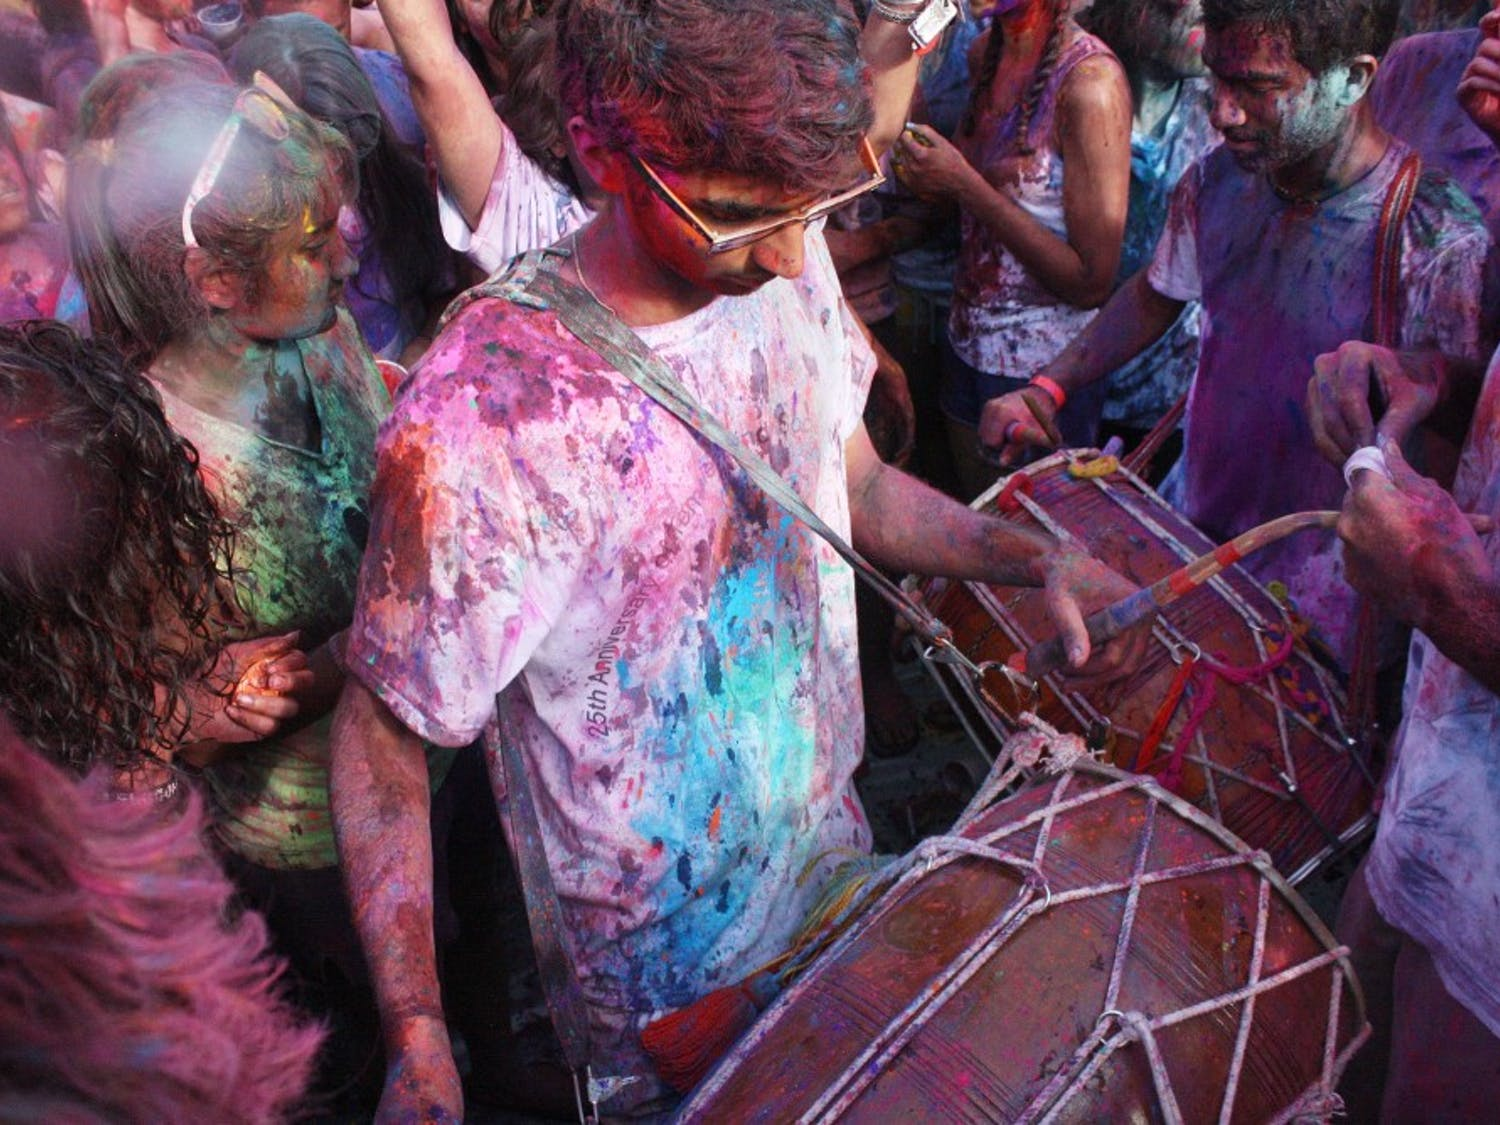 On Friday, March 23, the Hindu festival, Holi, was celebrated by over one thousand students in the Lower Quad.